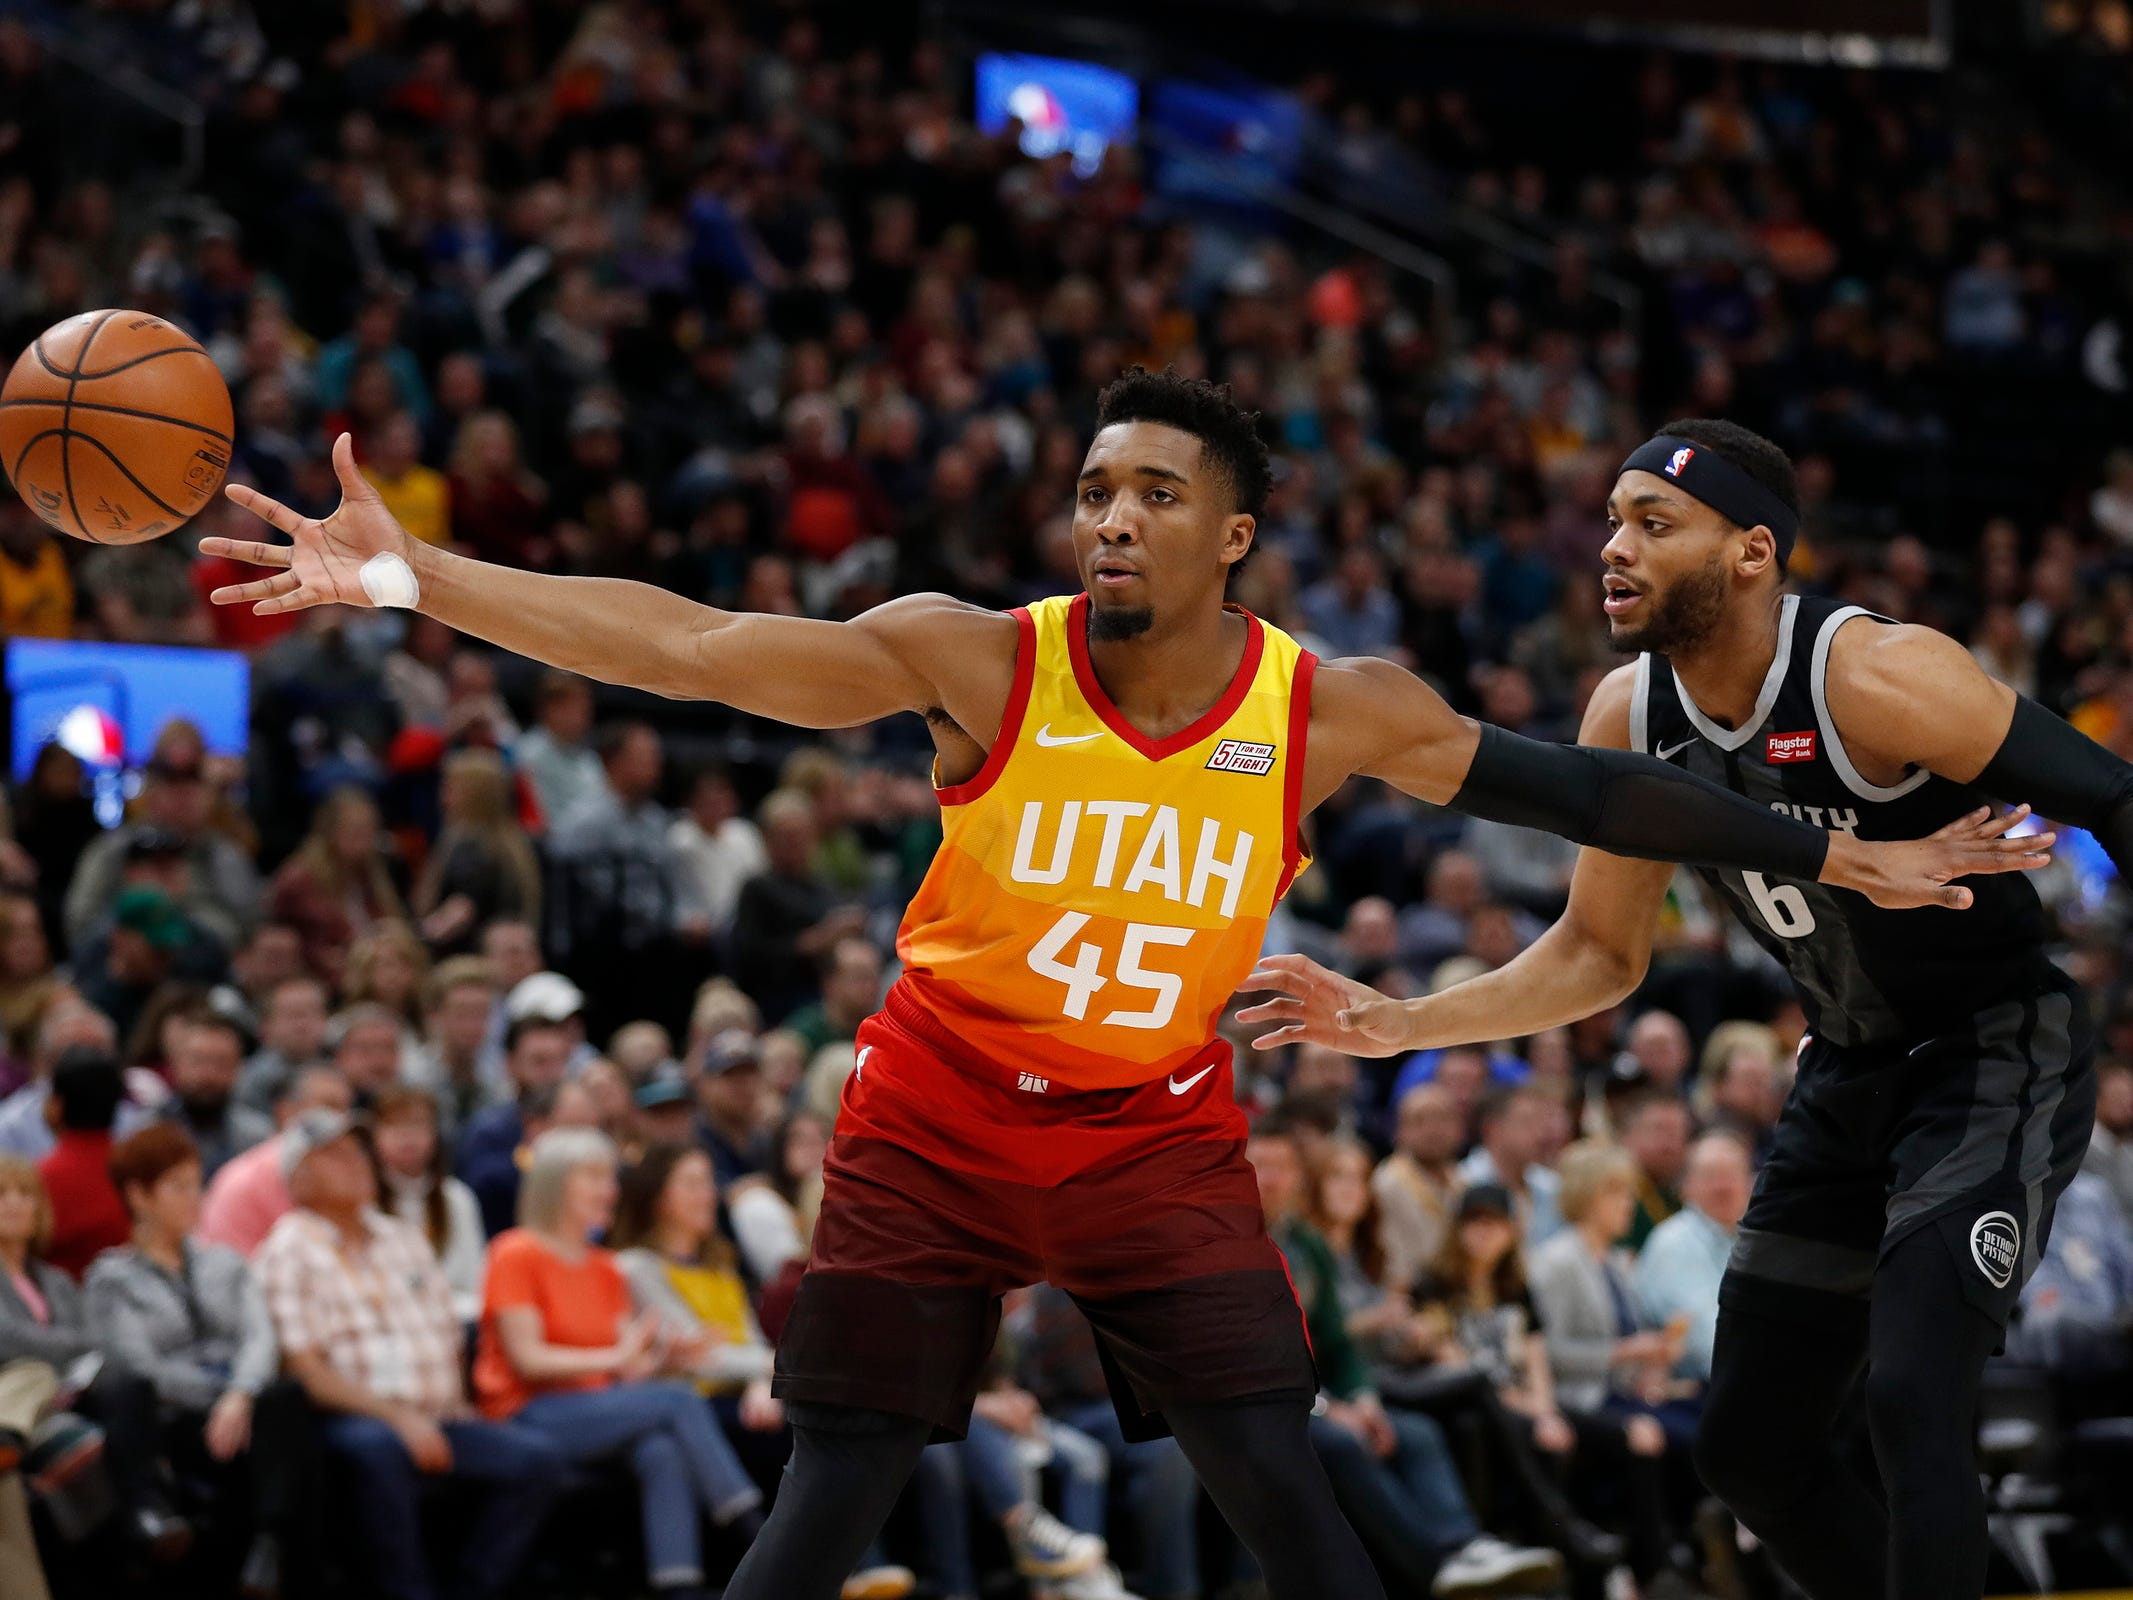 Utah Jazz guard Donovan Mitchell receives a pass against Detroit Pistons guard Bruce Brown in the first quarter Monday, Jan. 14, 2019, in Salt Lake City.